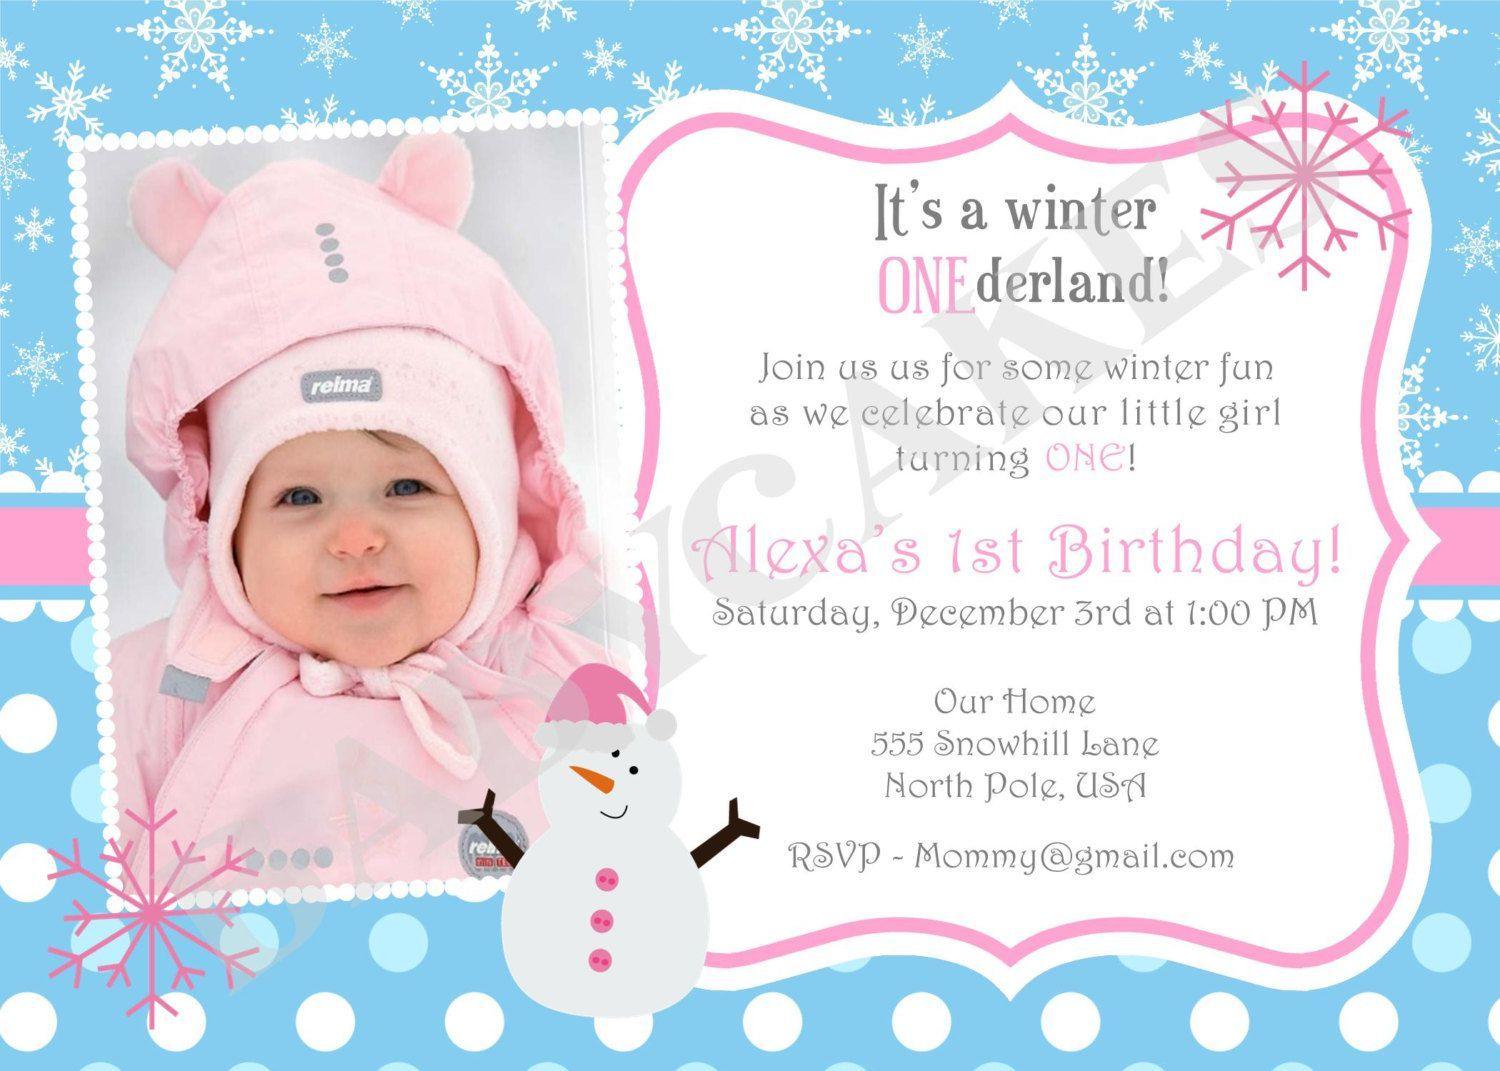 Birthday Invitation Wording For Year Old Birthday Invitations - Birthday invitation wording for a one year old